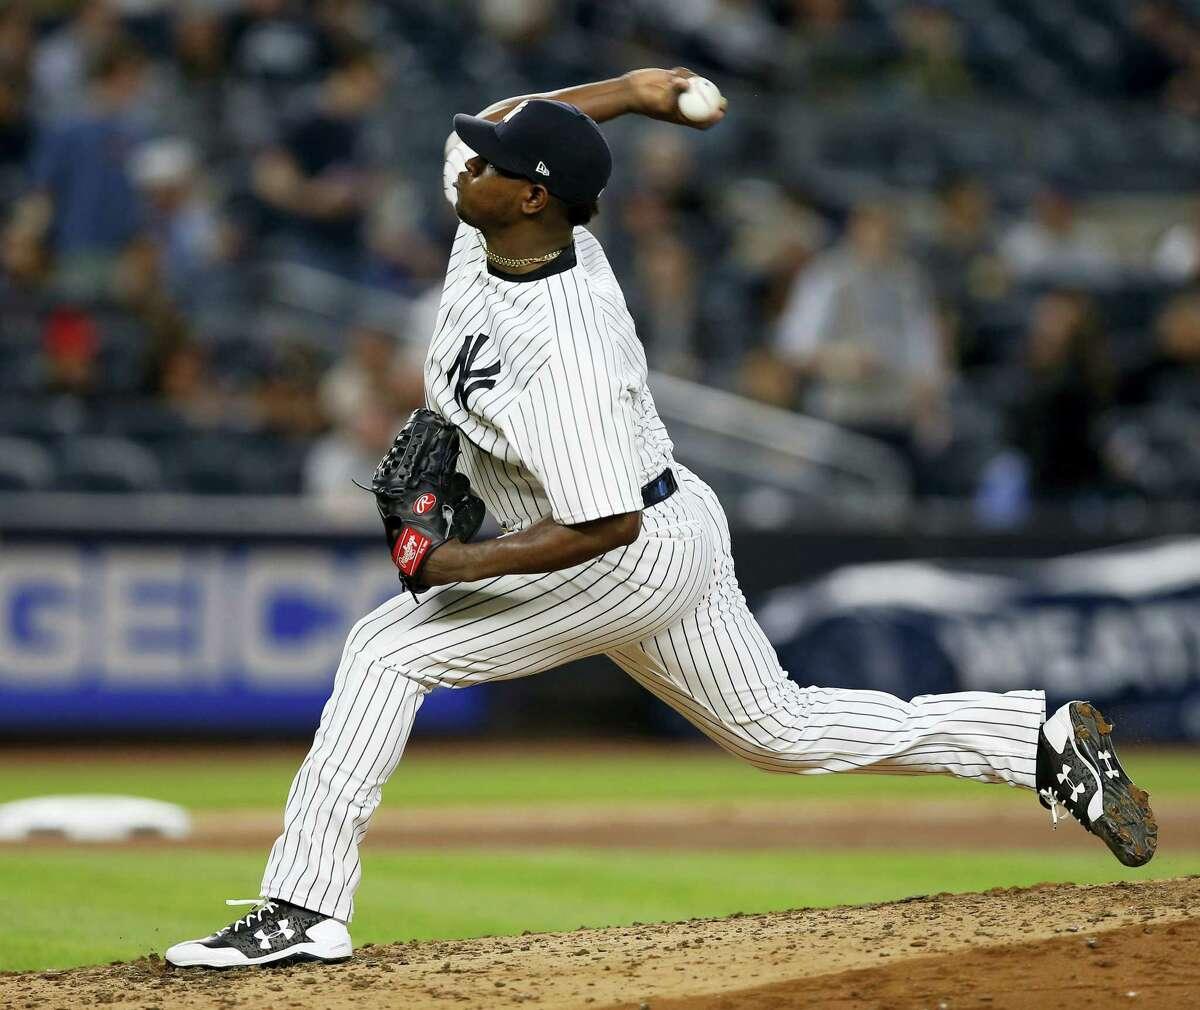 New York Yankees starting pitcher Luis Severino winds up in the sixth inning of a baseball game against the Royals at Yankee Stadium in New York on Wednesday.